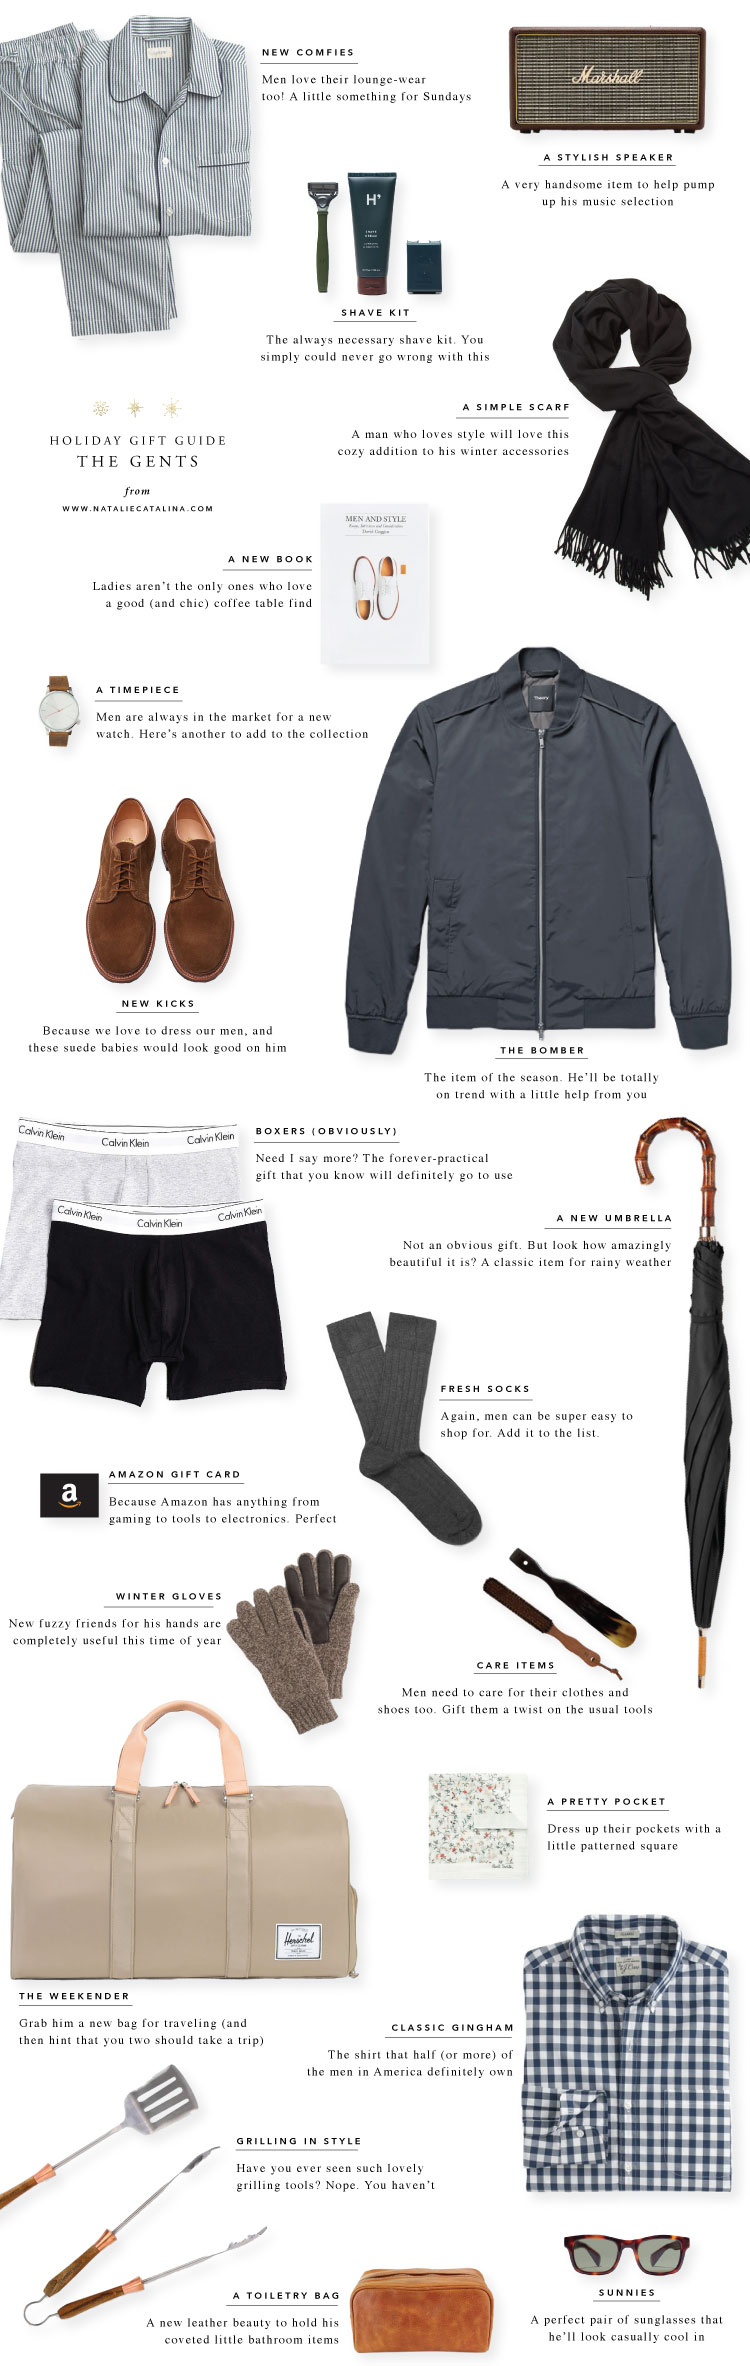 Gift Guide: The Gents on Natalie Catalina